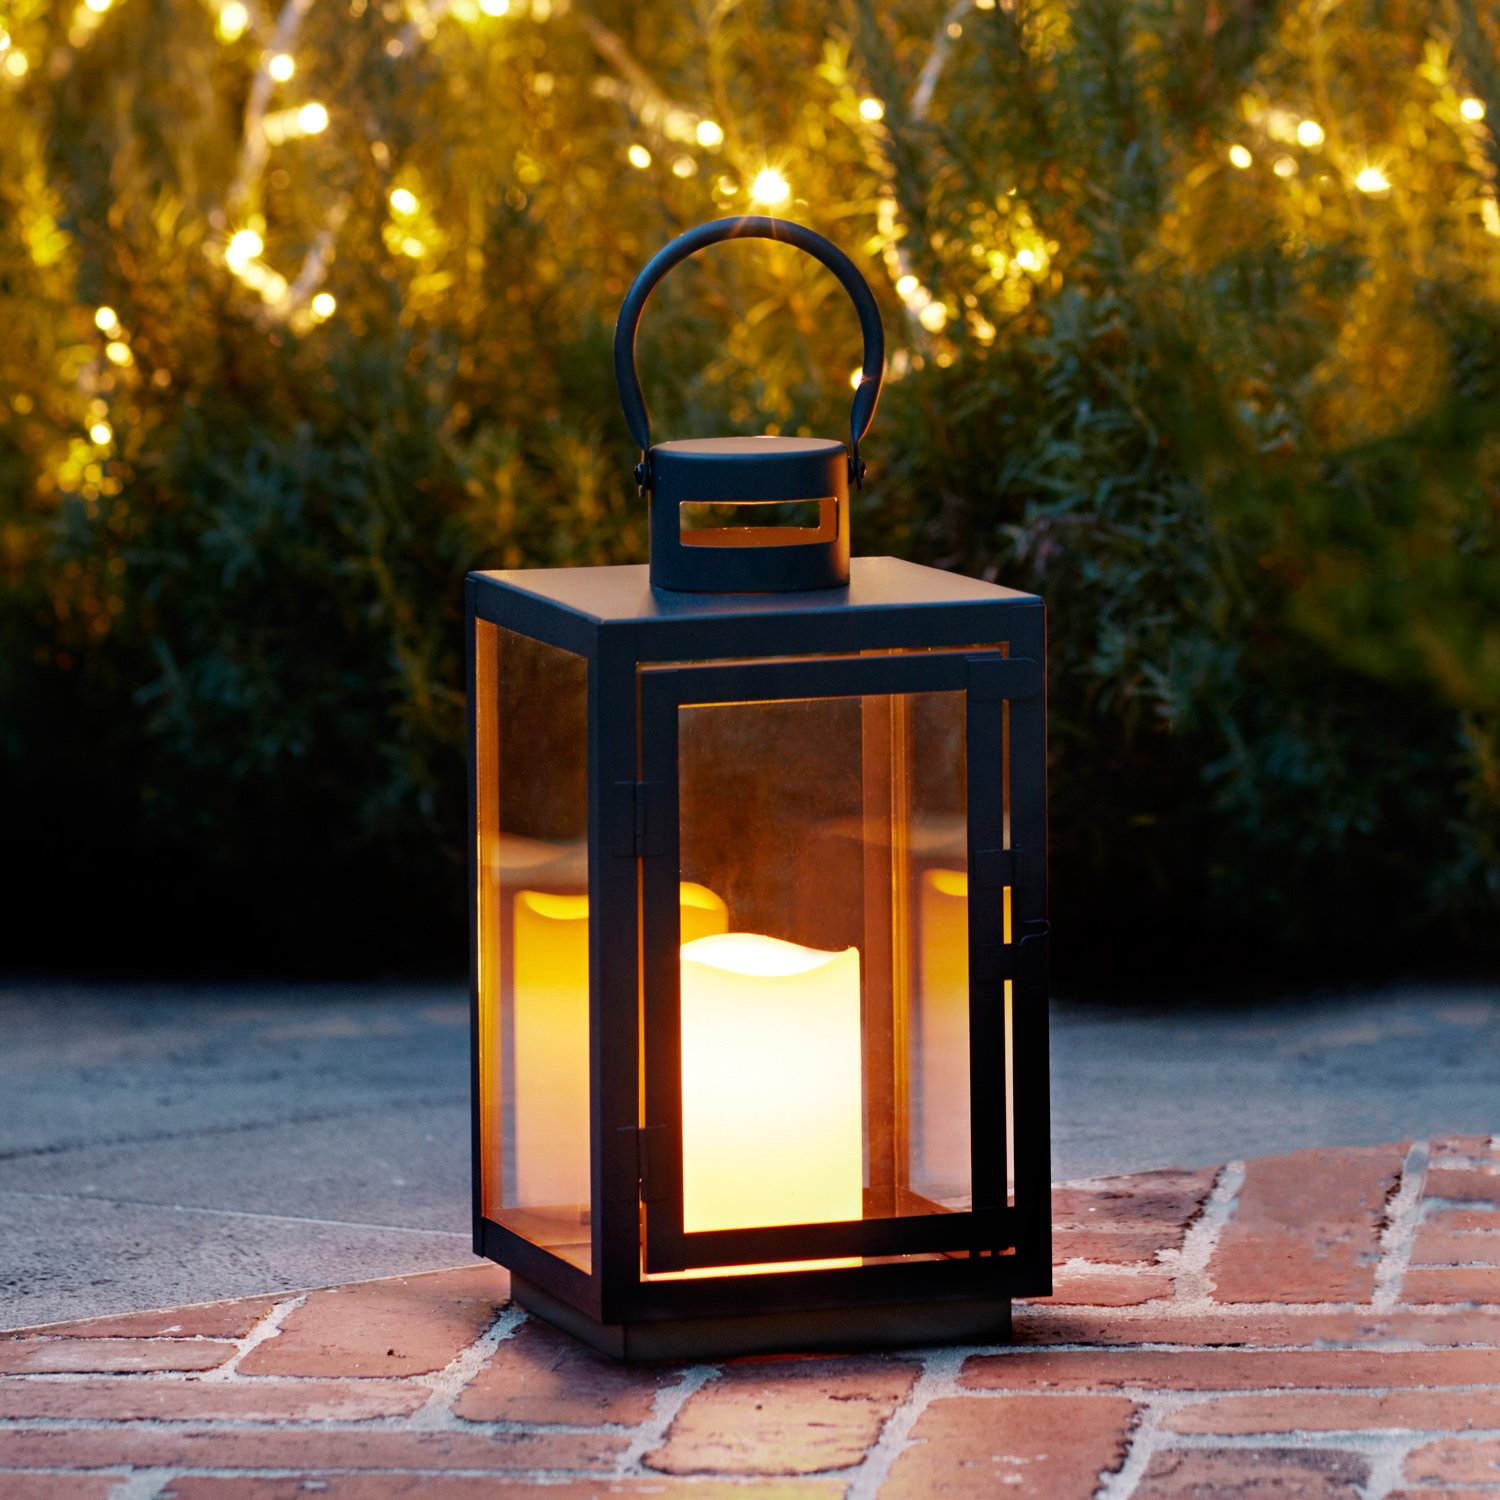 Lights4fun, Inc. Black Metal Battery Operated Fully Weatherproof Outdoor LED Garden & Patio Flameless Candle Lantern